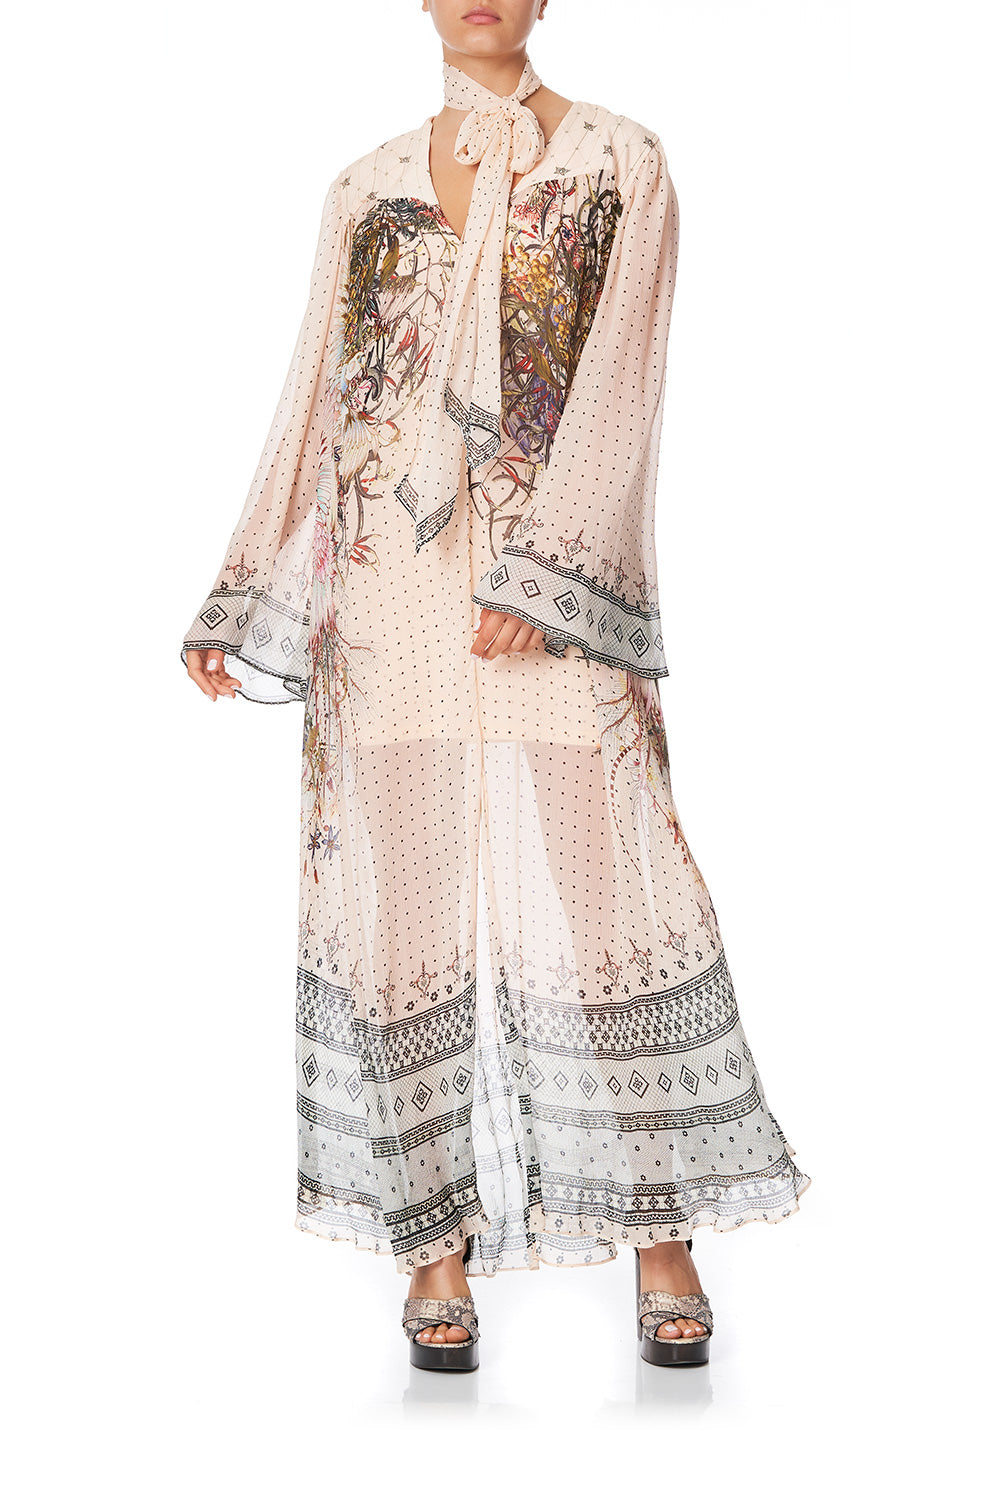 LONG SLEEVE DRESS WITH YOKE KINDRED SKIES